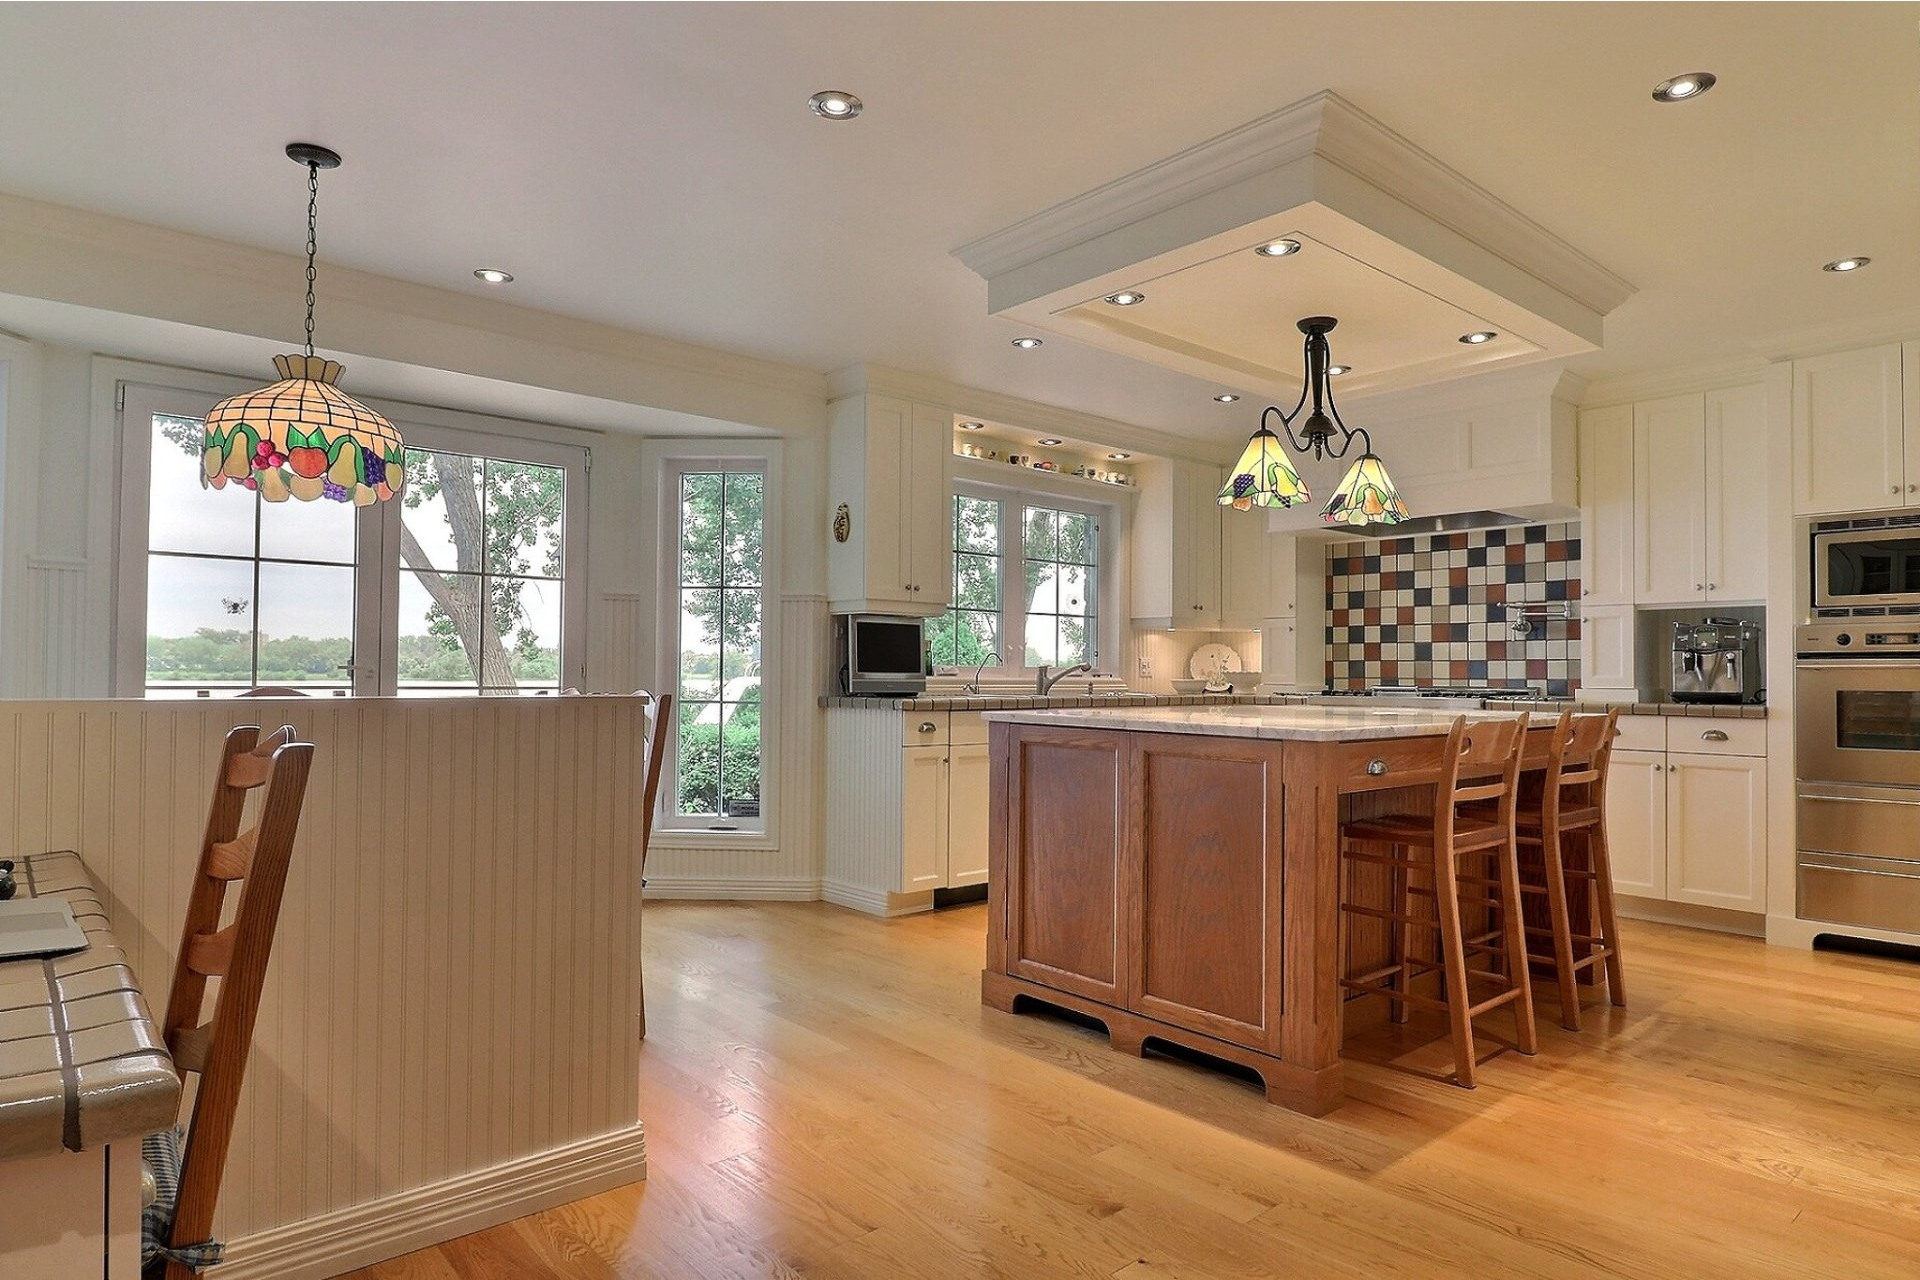 image 15 - House For sale Duvernay Laval